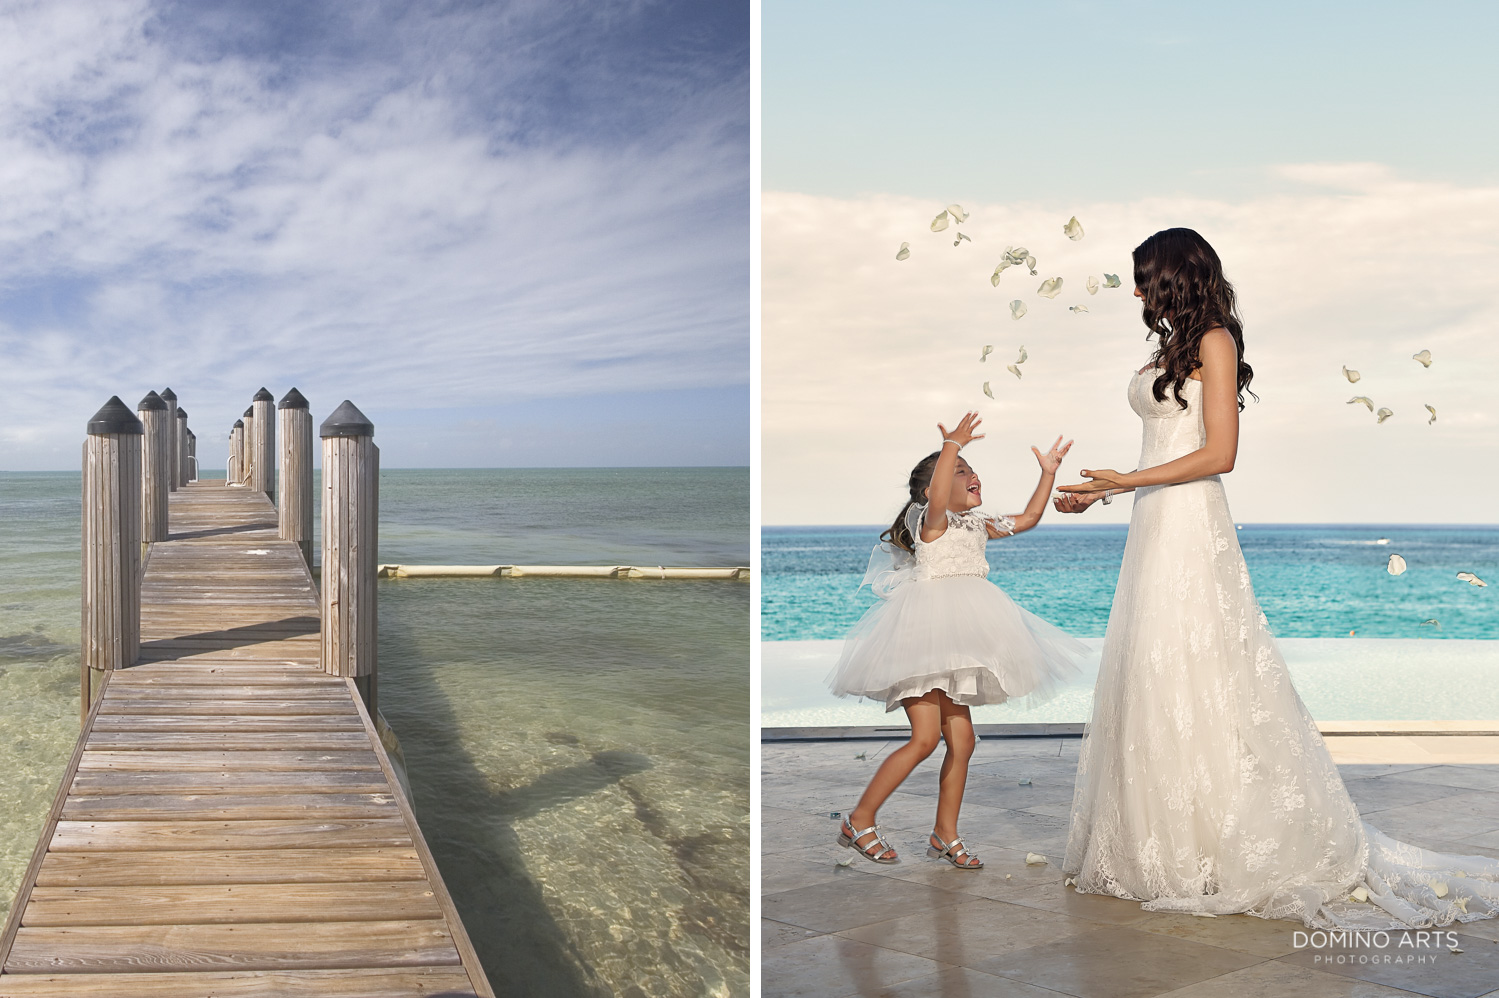 Flower girl and bride picture at One&Only Ocean Club Bahamas